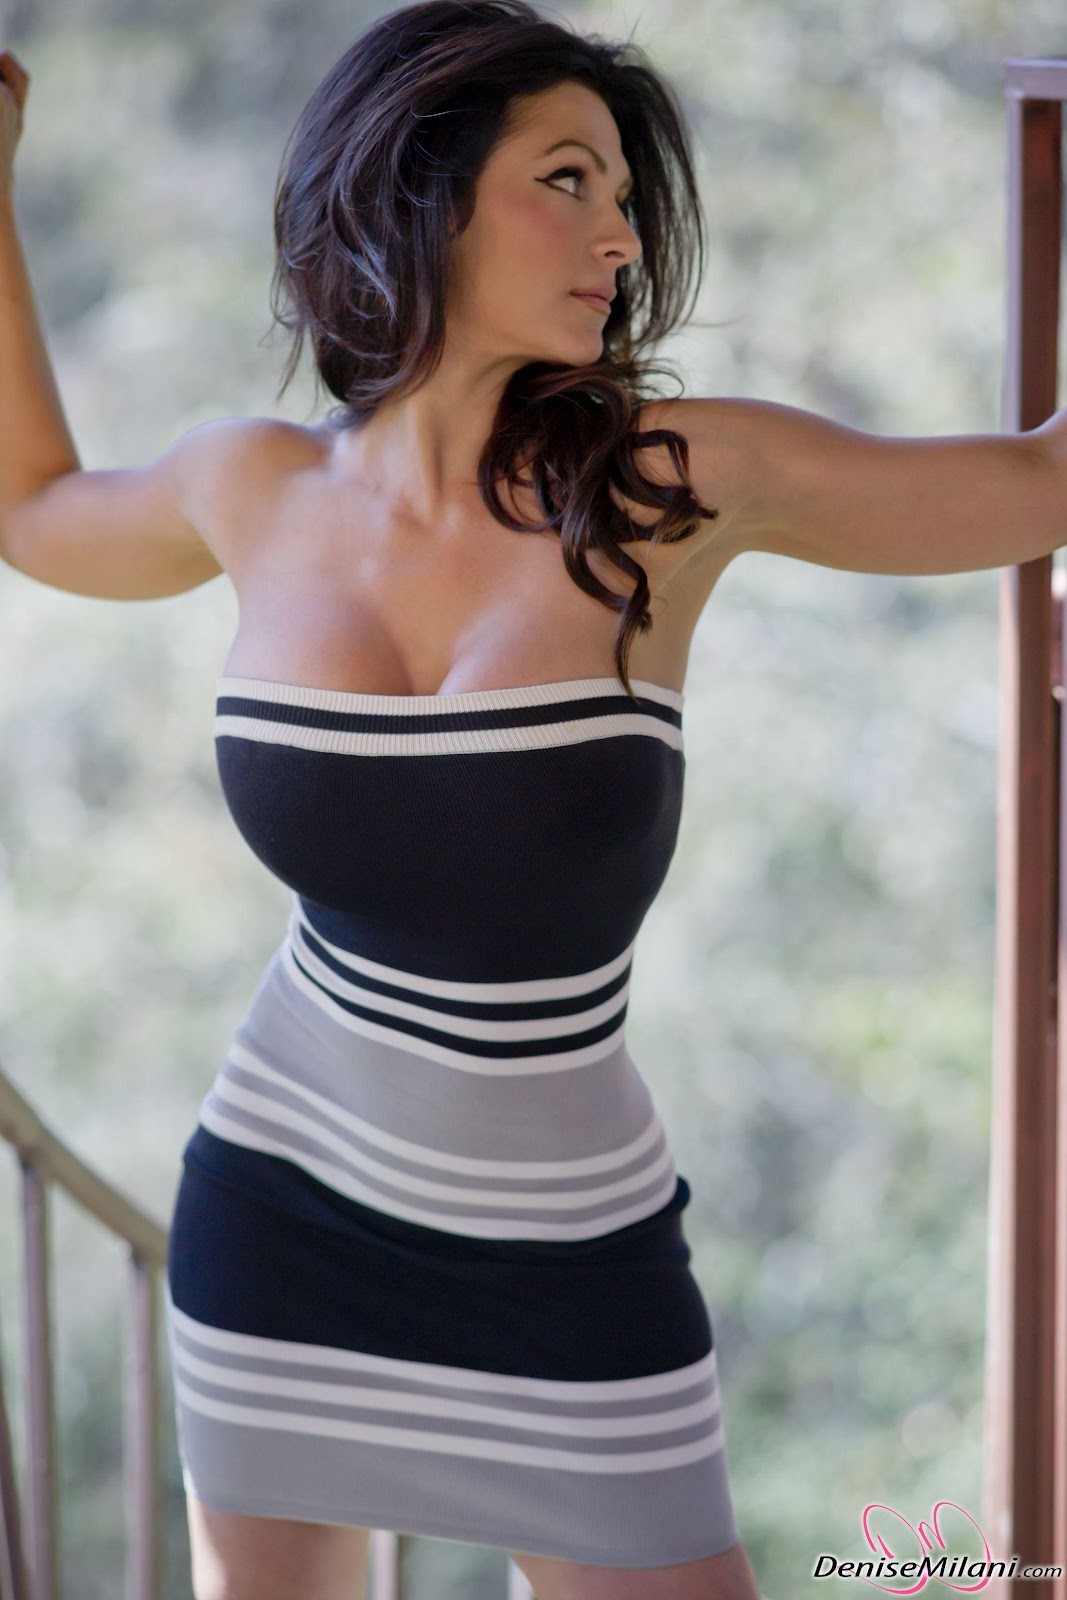 Denise Milani Beautiful Figure Picture Taste Wallpapers